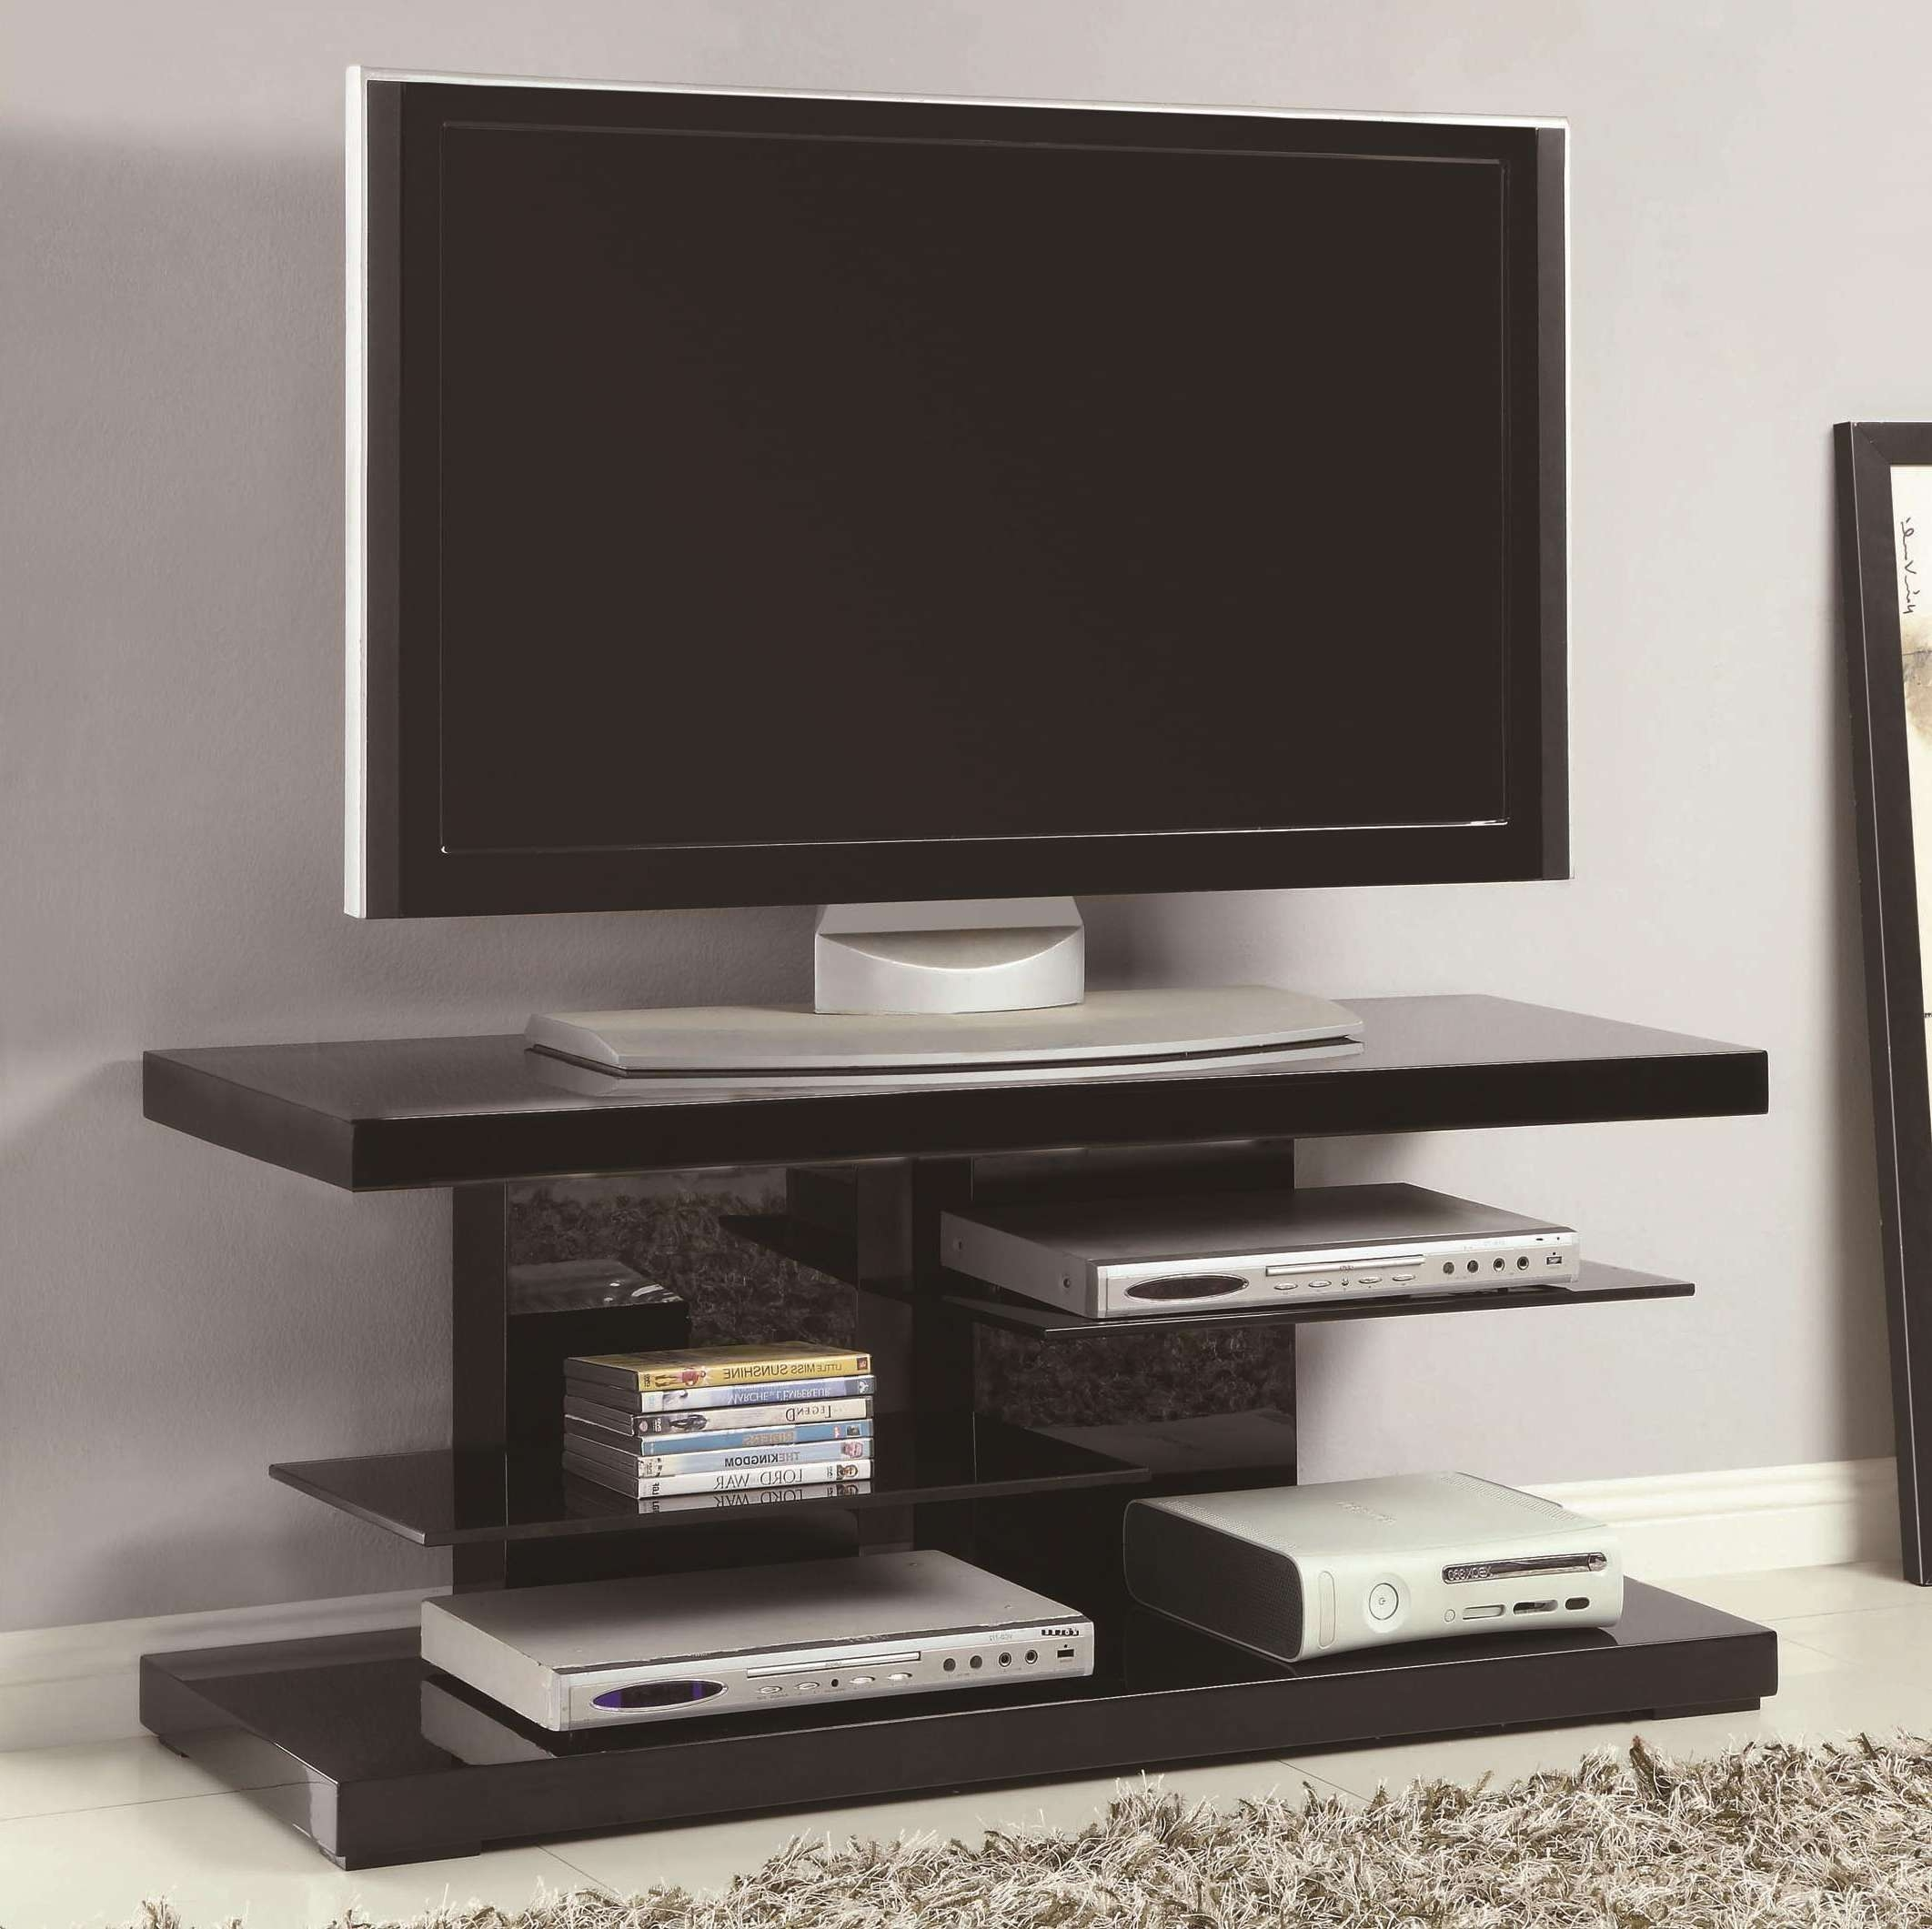 Best Contemporary Tv Console For Flat Screens | All Contemporary Pertaining To Contemporary Tv Stands For Flat Screens (View 19 of 20)